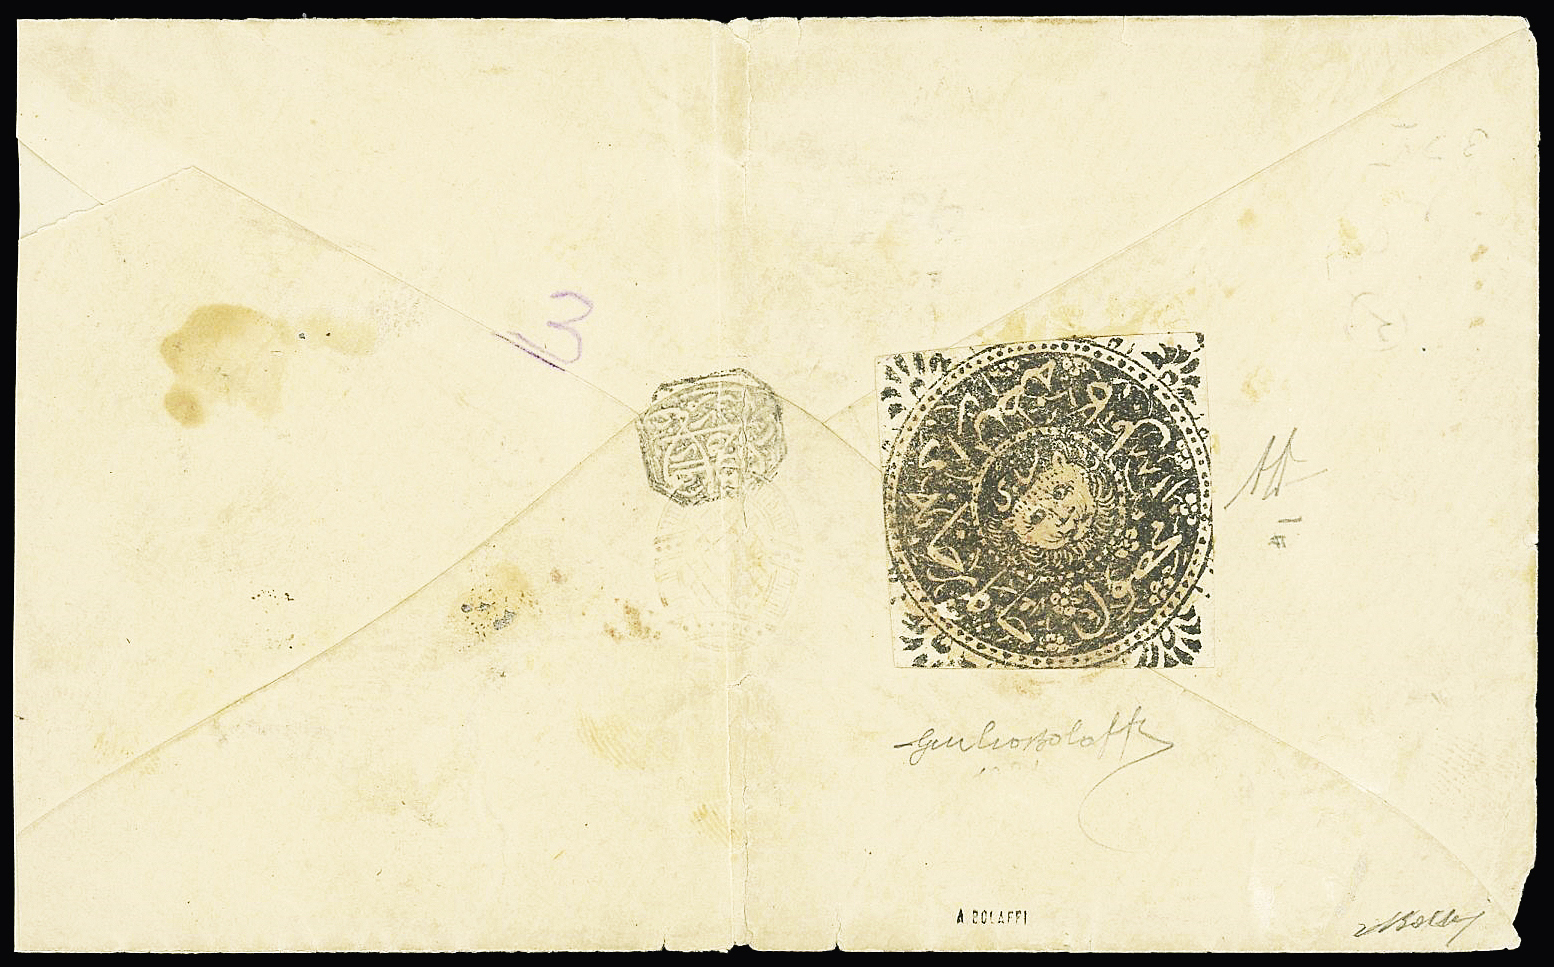 Lot 628 - Overseas » AFGHANISTAN » 1288 (1871-72) Tiger's Head Issue  -  Le Timbre Classique SA SALE ON OFFERS N ° 37 PARIS